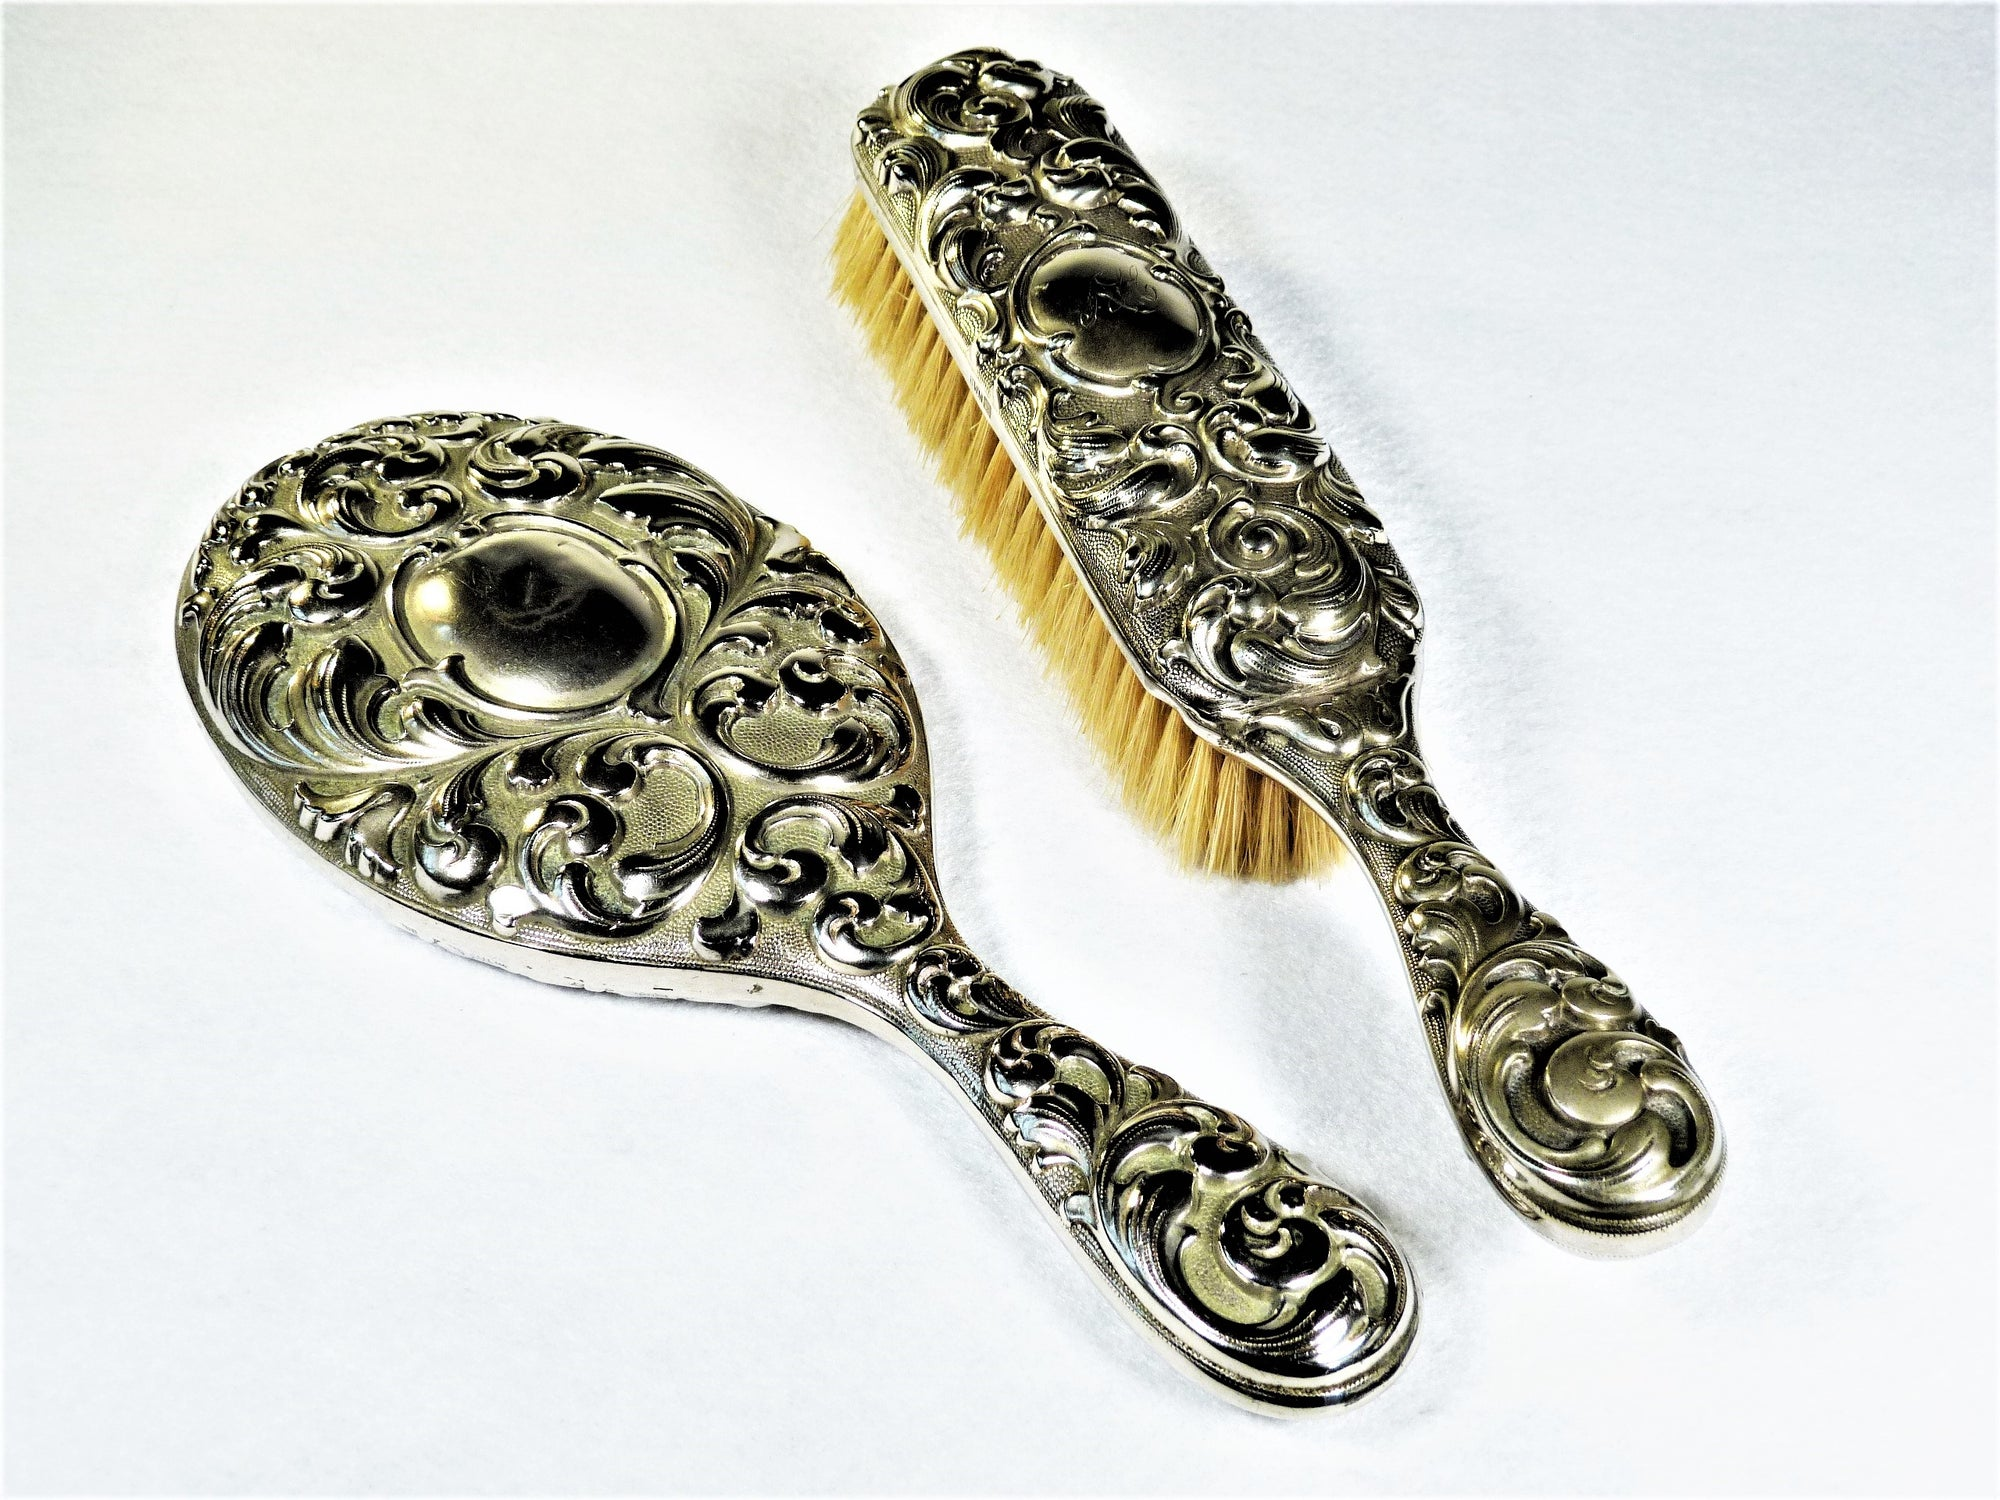 Silver Plate Brush and Mirror, Vintage Dressing Table Set, Ornate Vanity Set